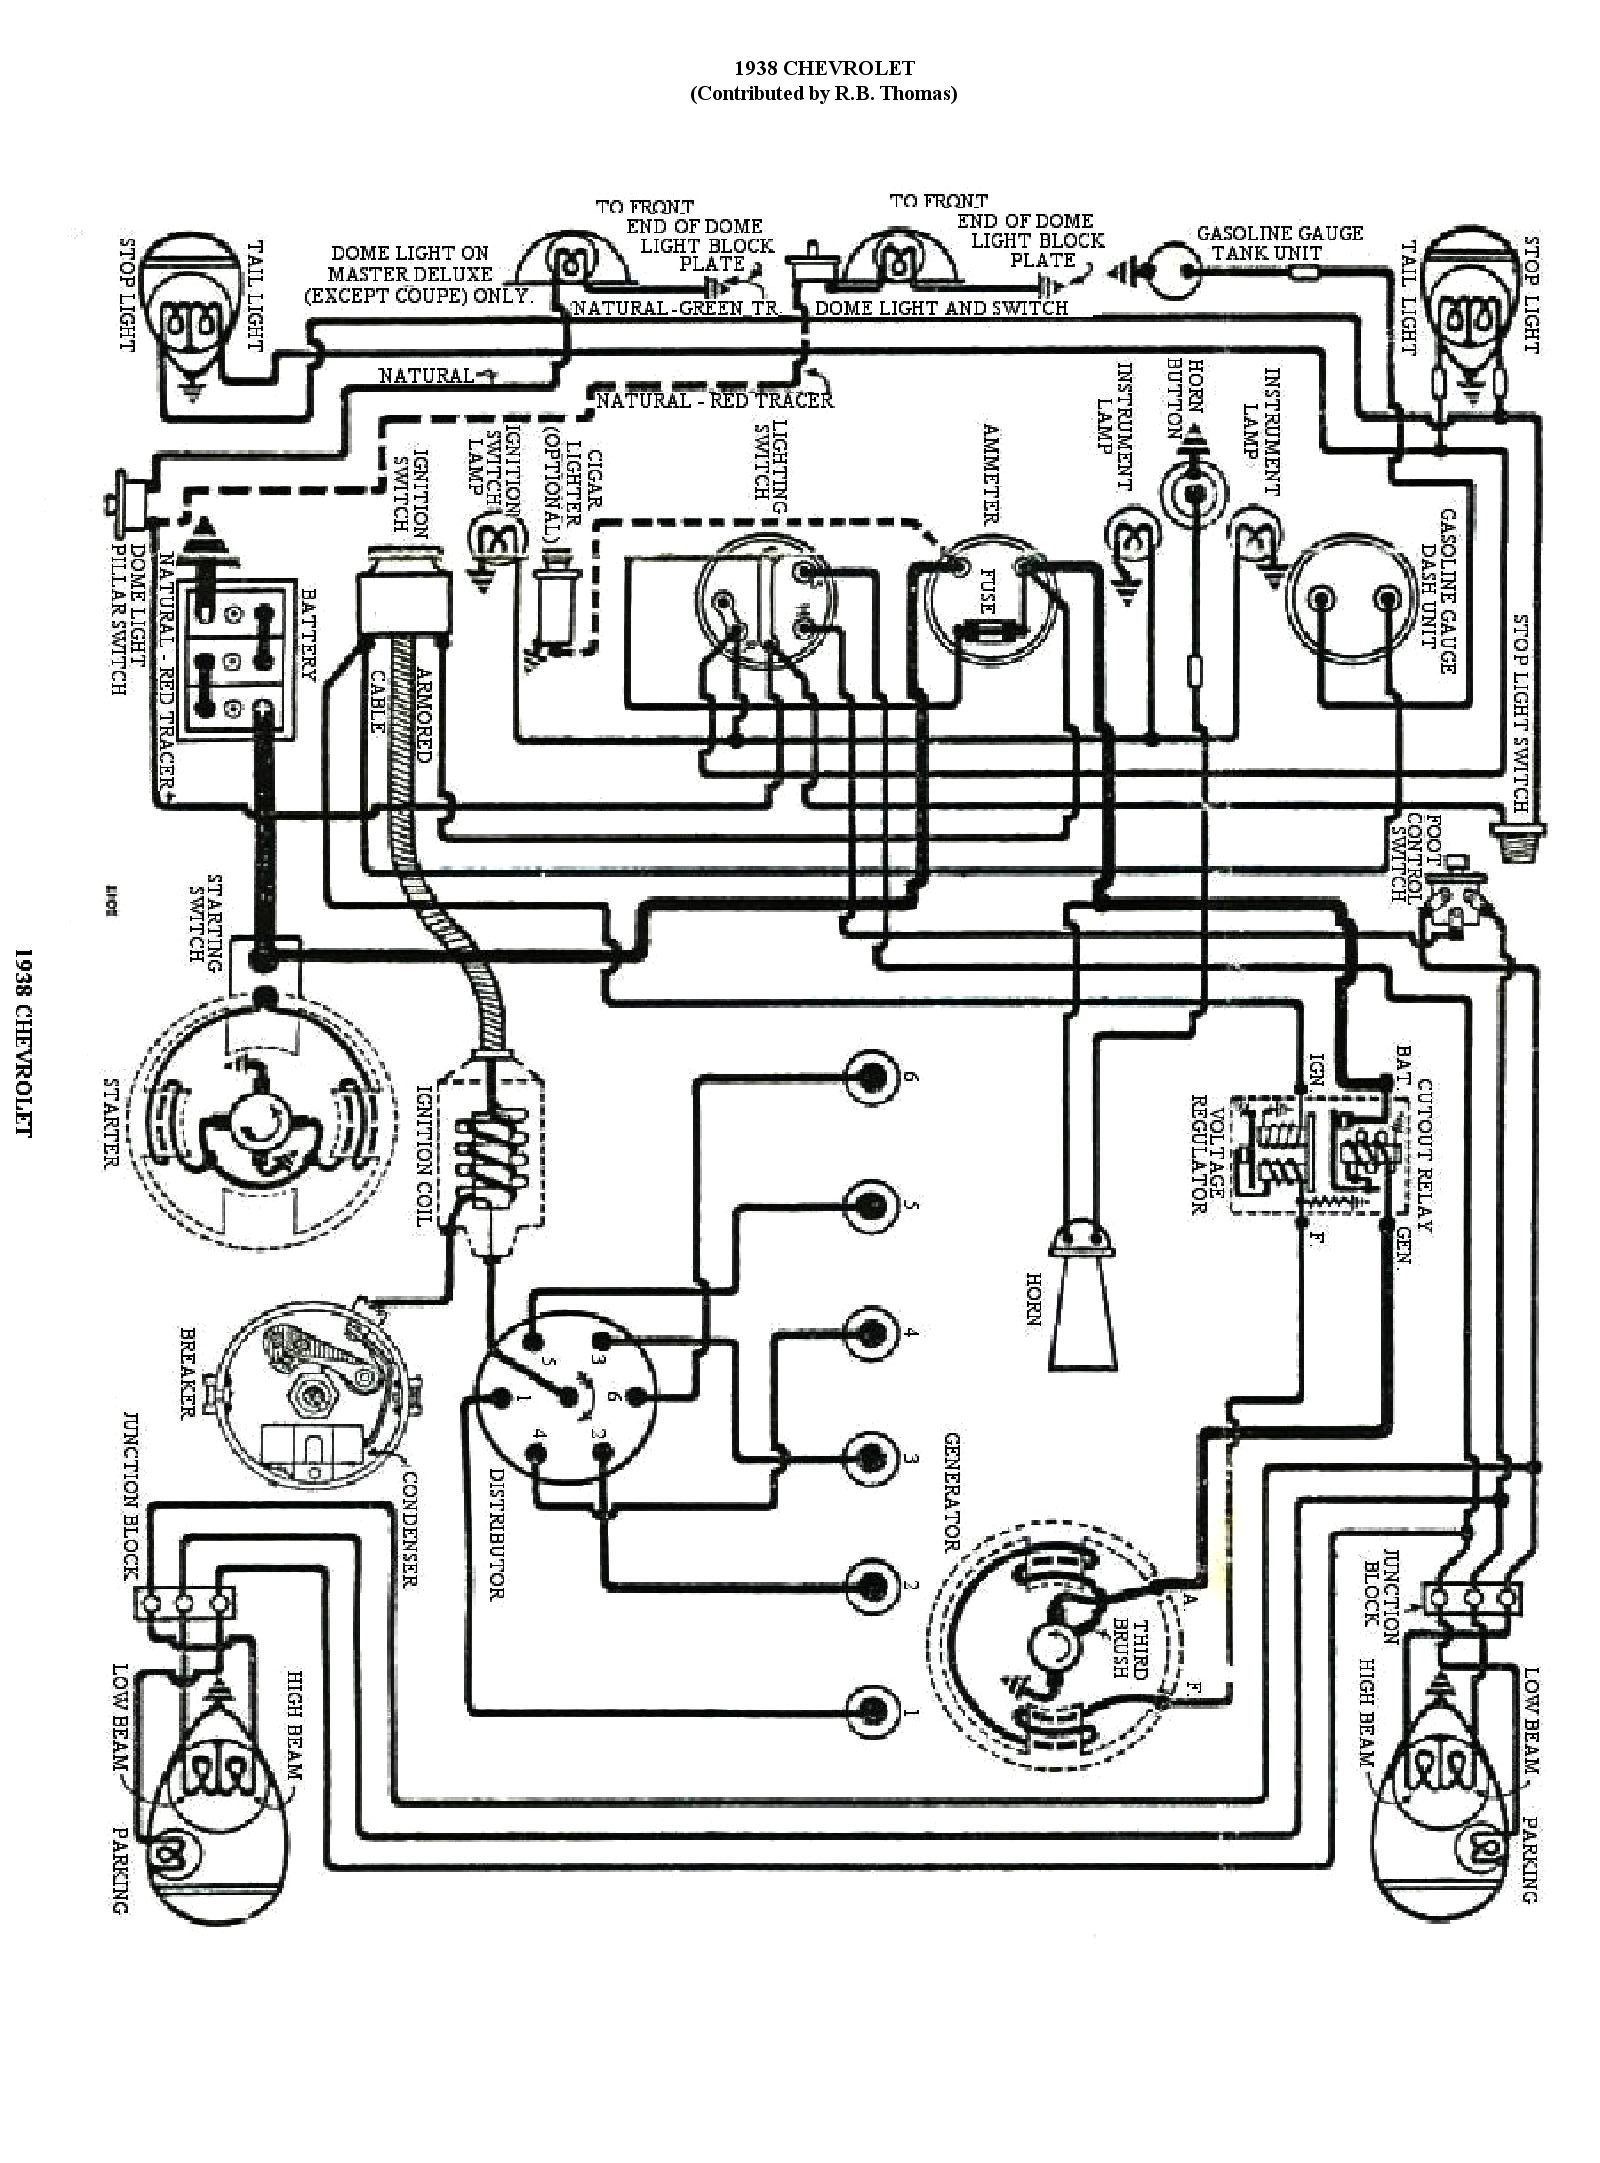 Ford Model A Wiring Diagram